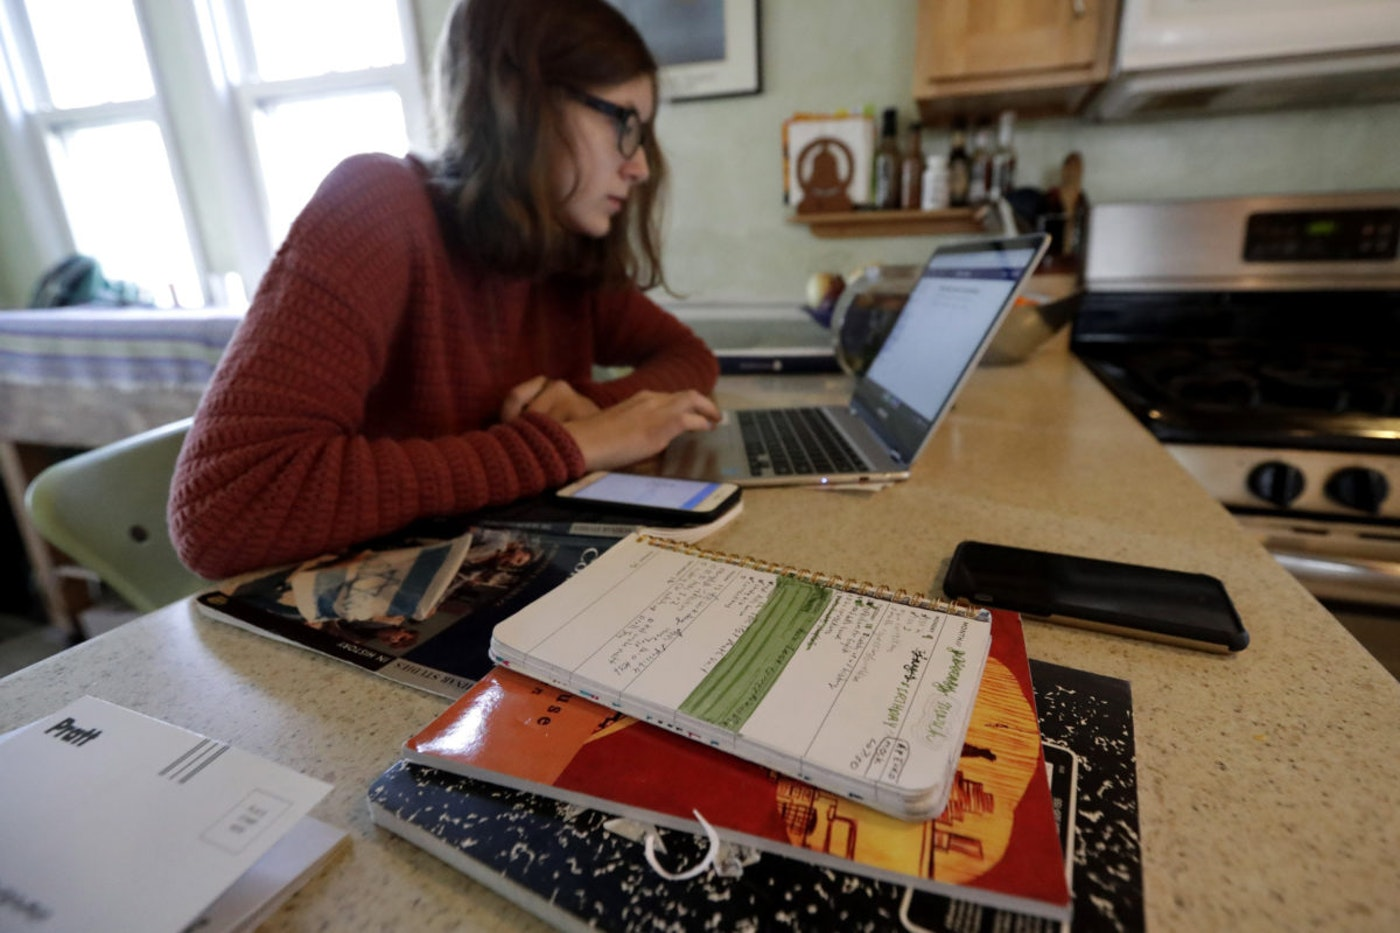 Olivia Marton, an 11th grader at Lincoln Park High School, studies school work with her computer at her home in Chicago. AP Photo/Nam Y. Huh